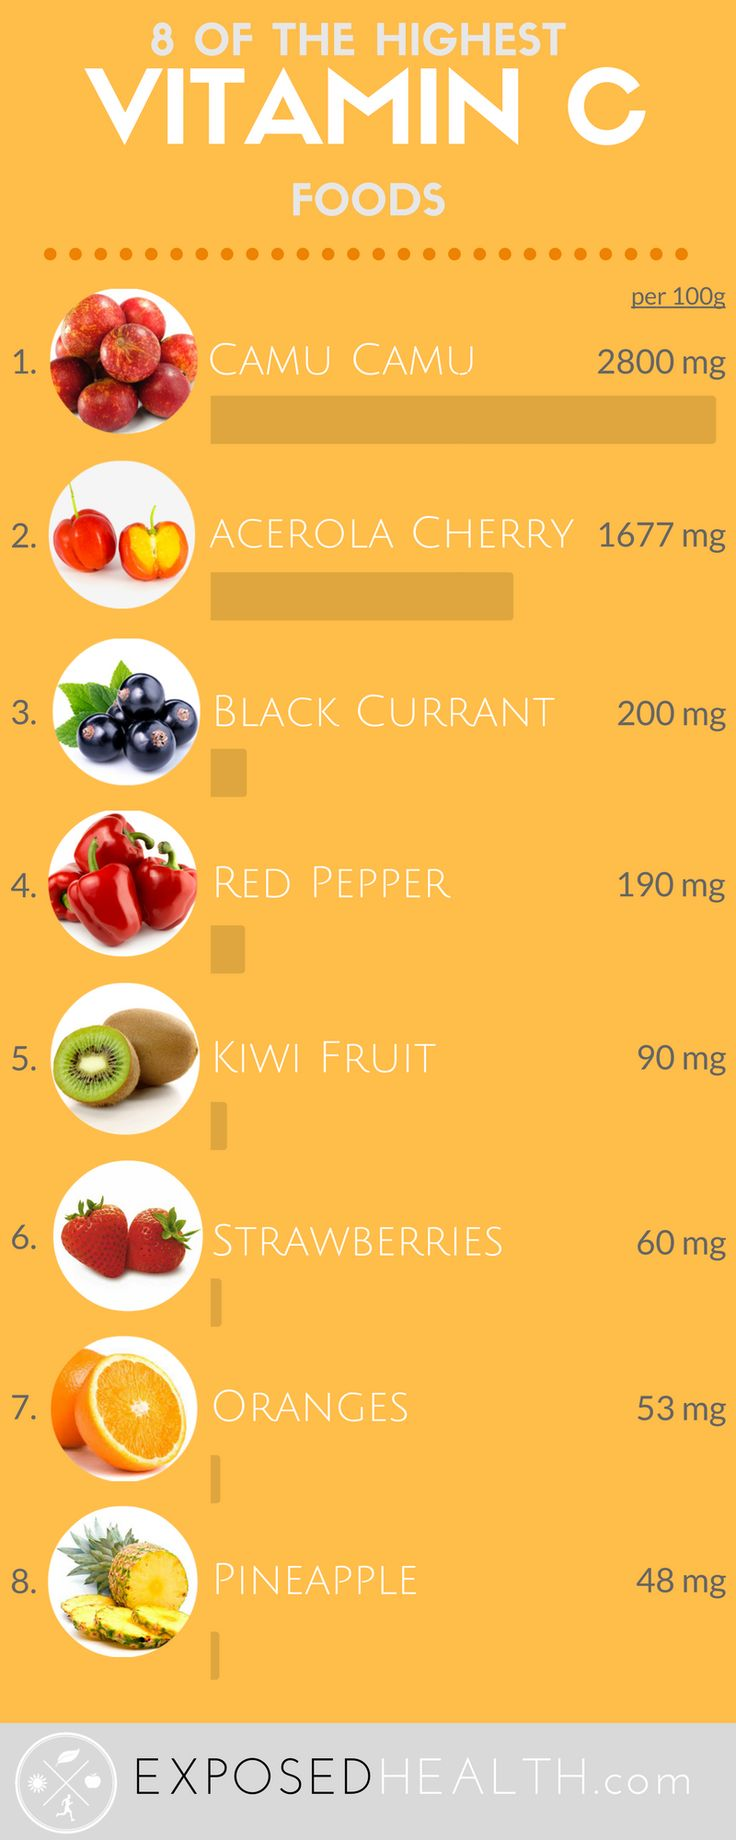 8 foods with the highest source of vitamin c